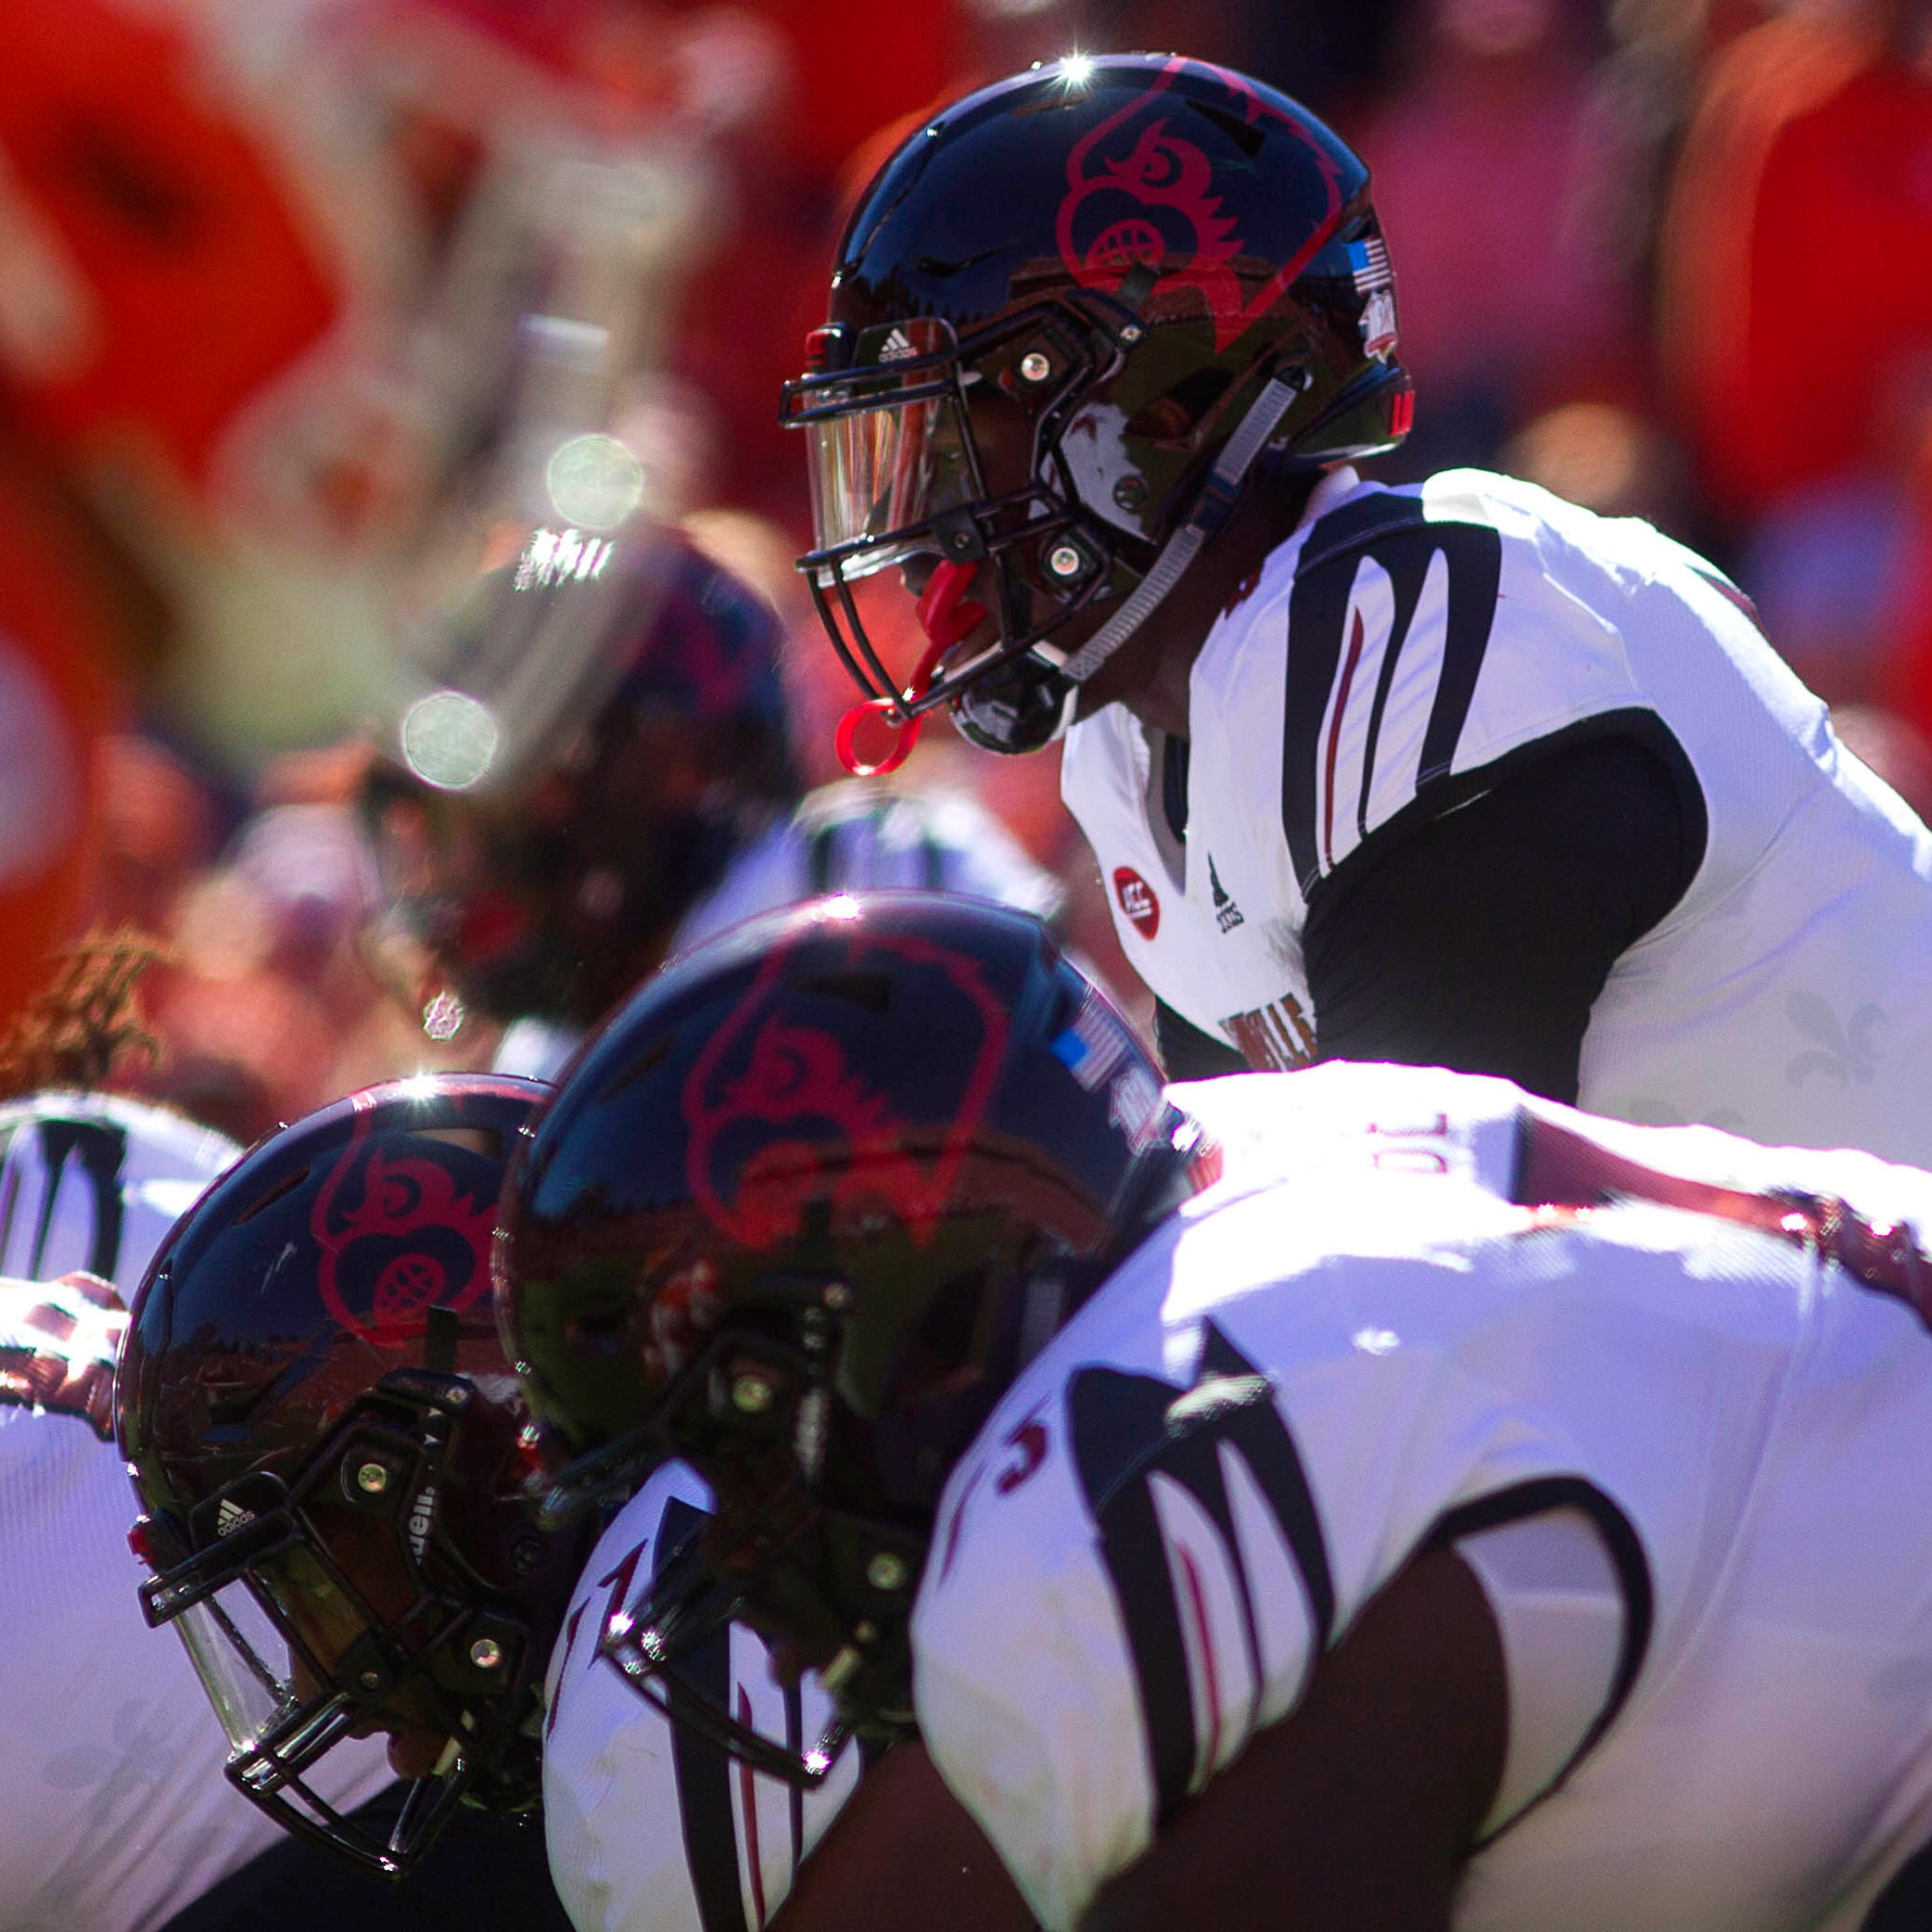 Louisville football is crumbling, and things could get worse Friday